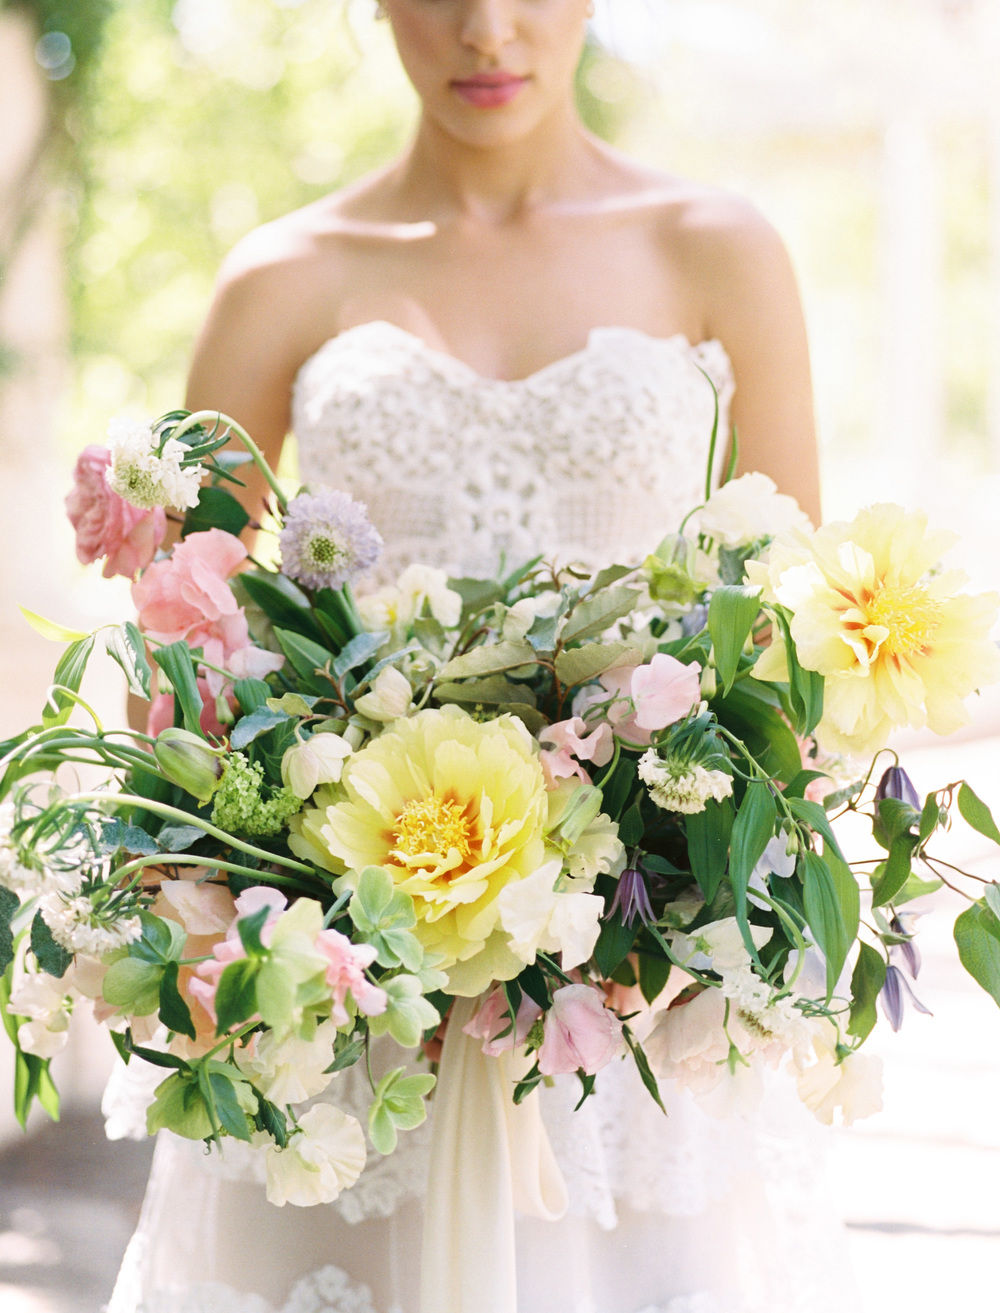 elegant texas garden wedding peony bouquet inspiration from The Wildflowers | follow us on instagram: @ thewildflowers.events